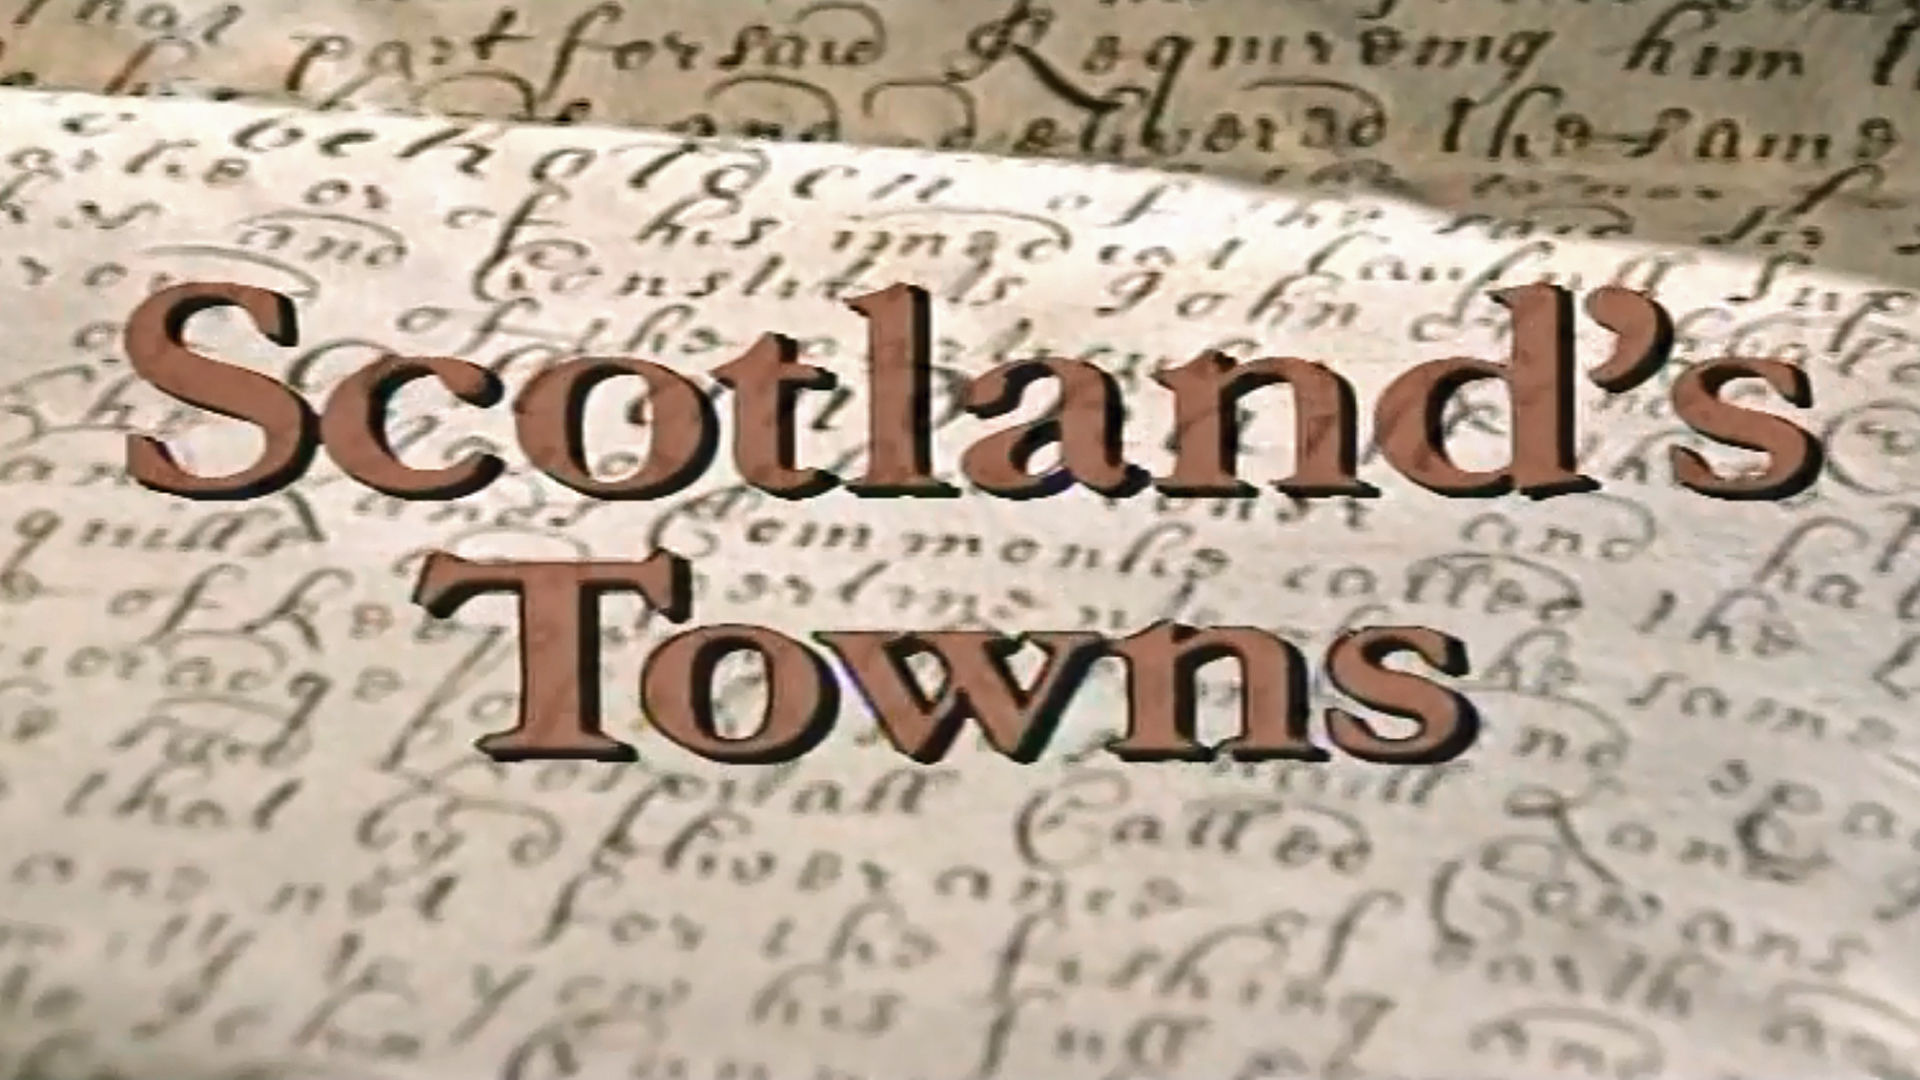 The Best of Scotland's Towns